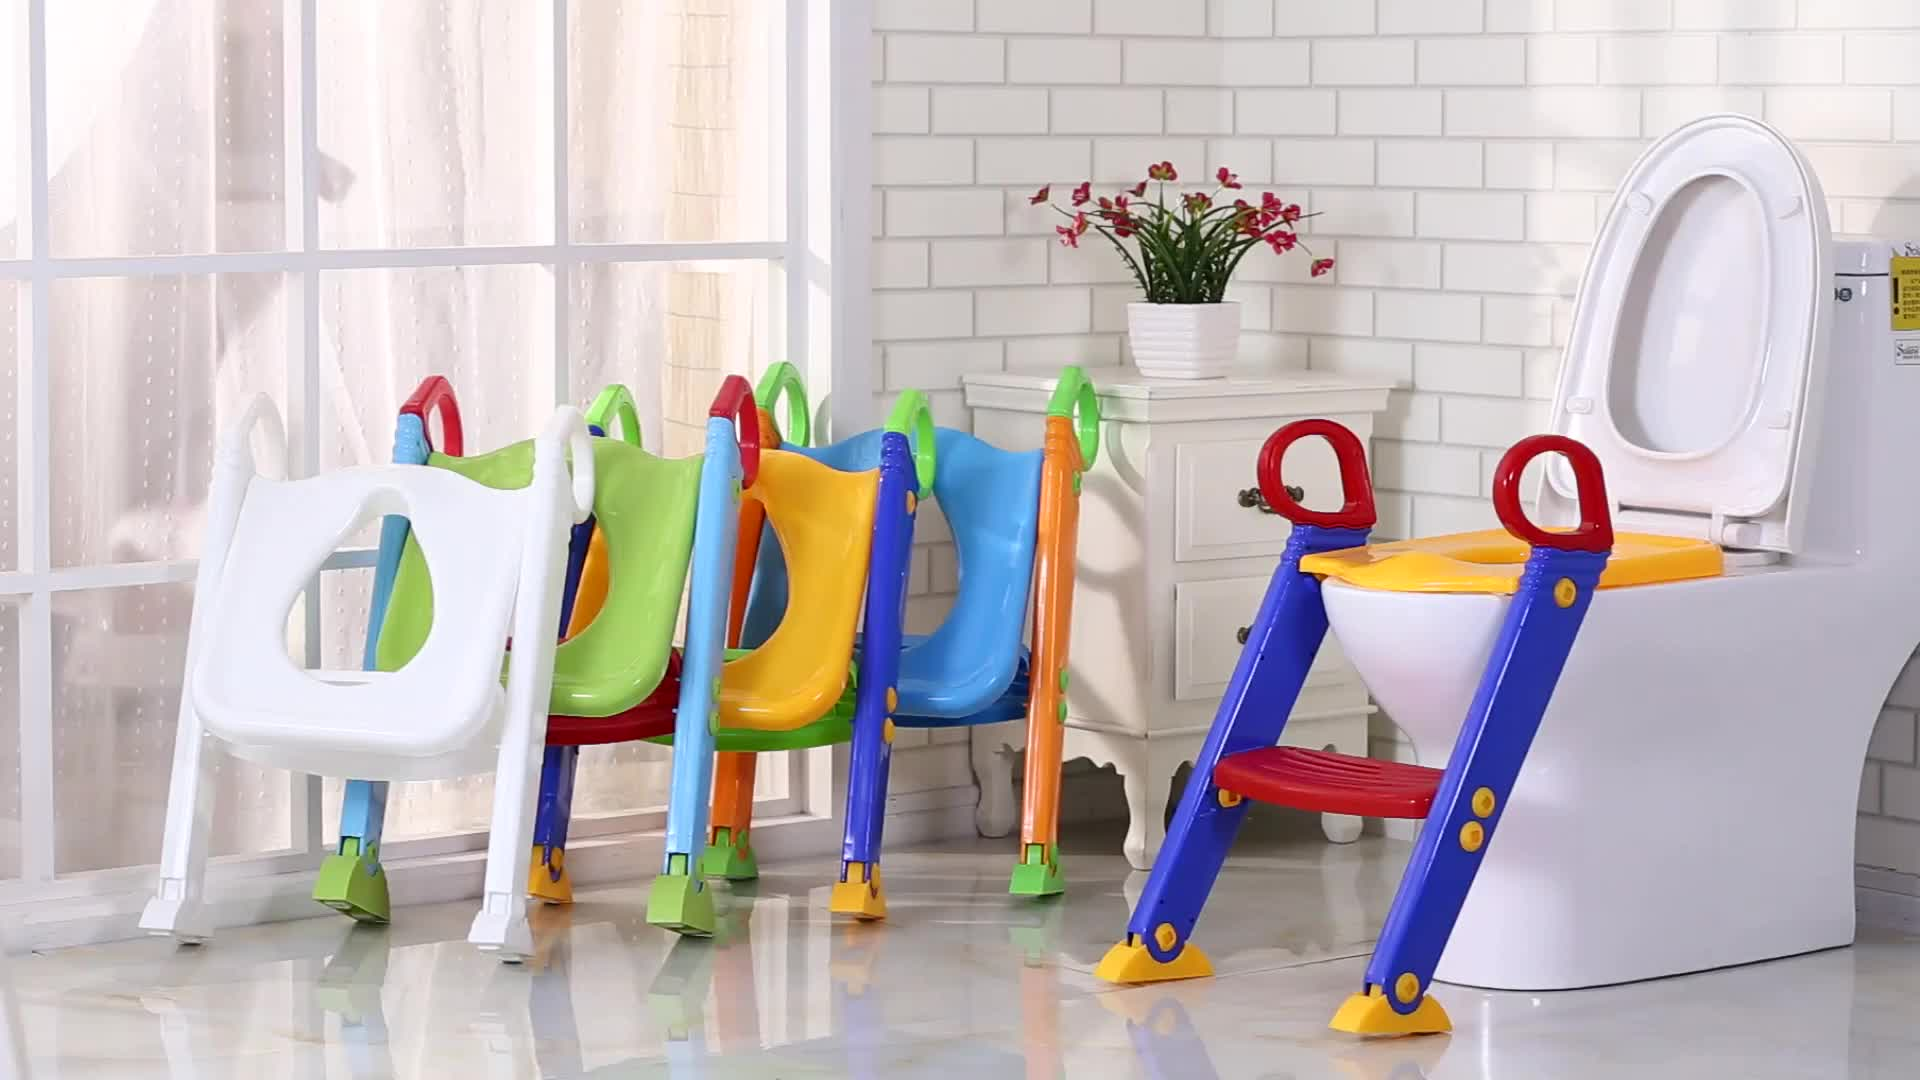 Foldable Baby Step Potty Training Seat Toilet Seat Stool With Ladder Buy Toilet Ladder Baby Potty Toilet Trainer With Ladder Product On Alibaba Com